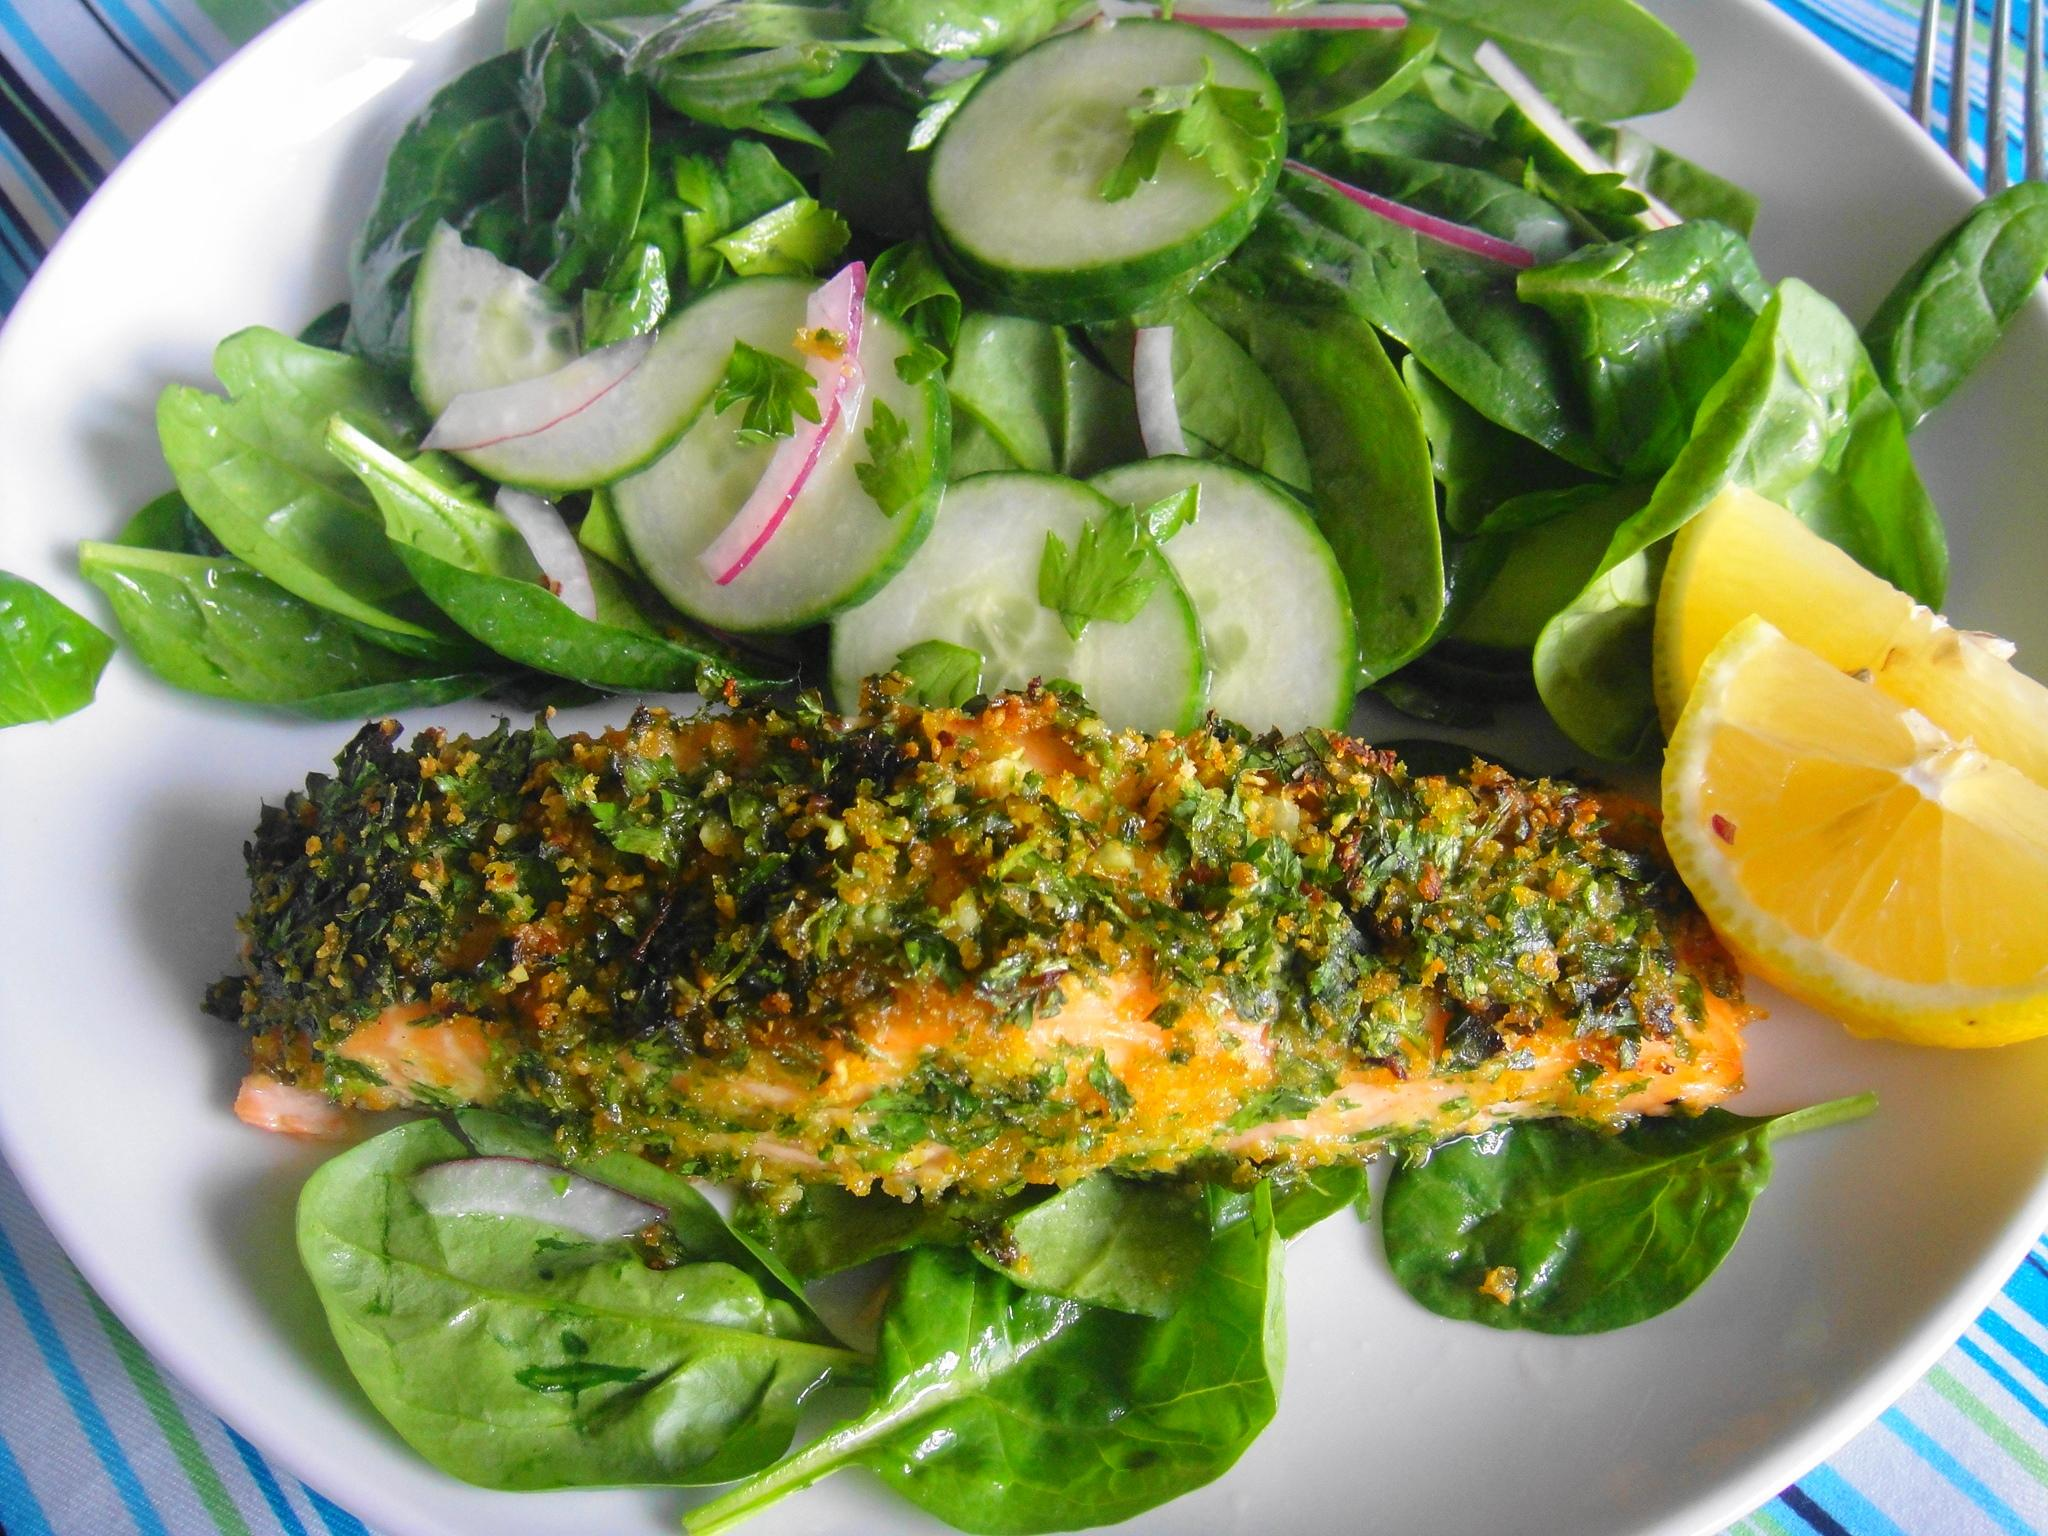 Baked Salmon with Honey Mustard Herb Crust